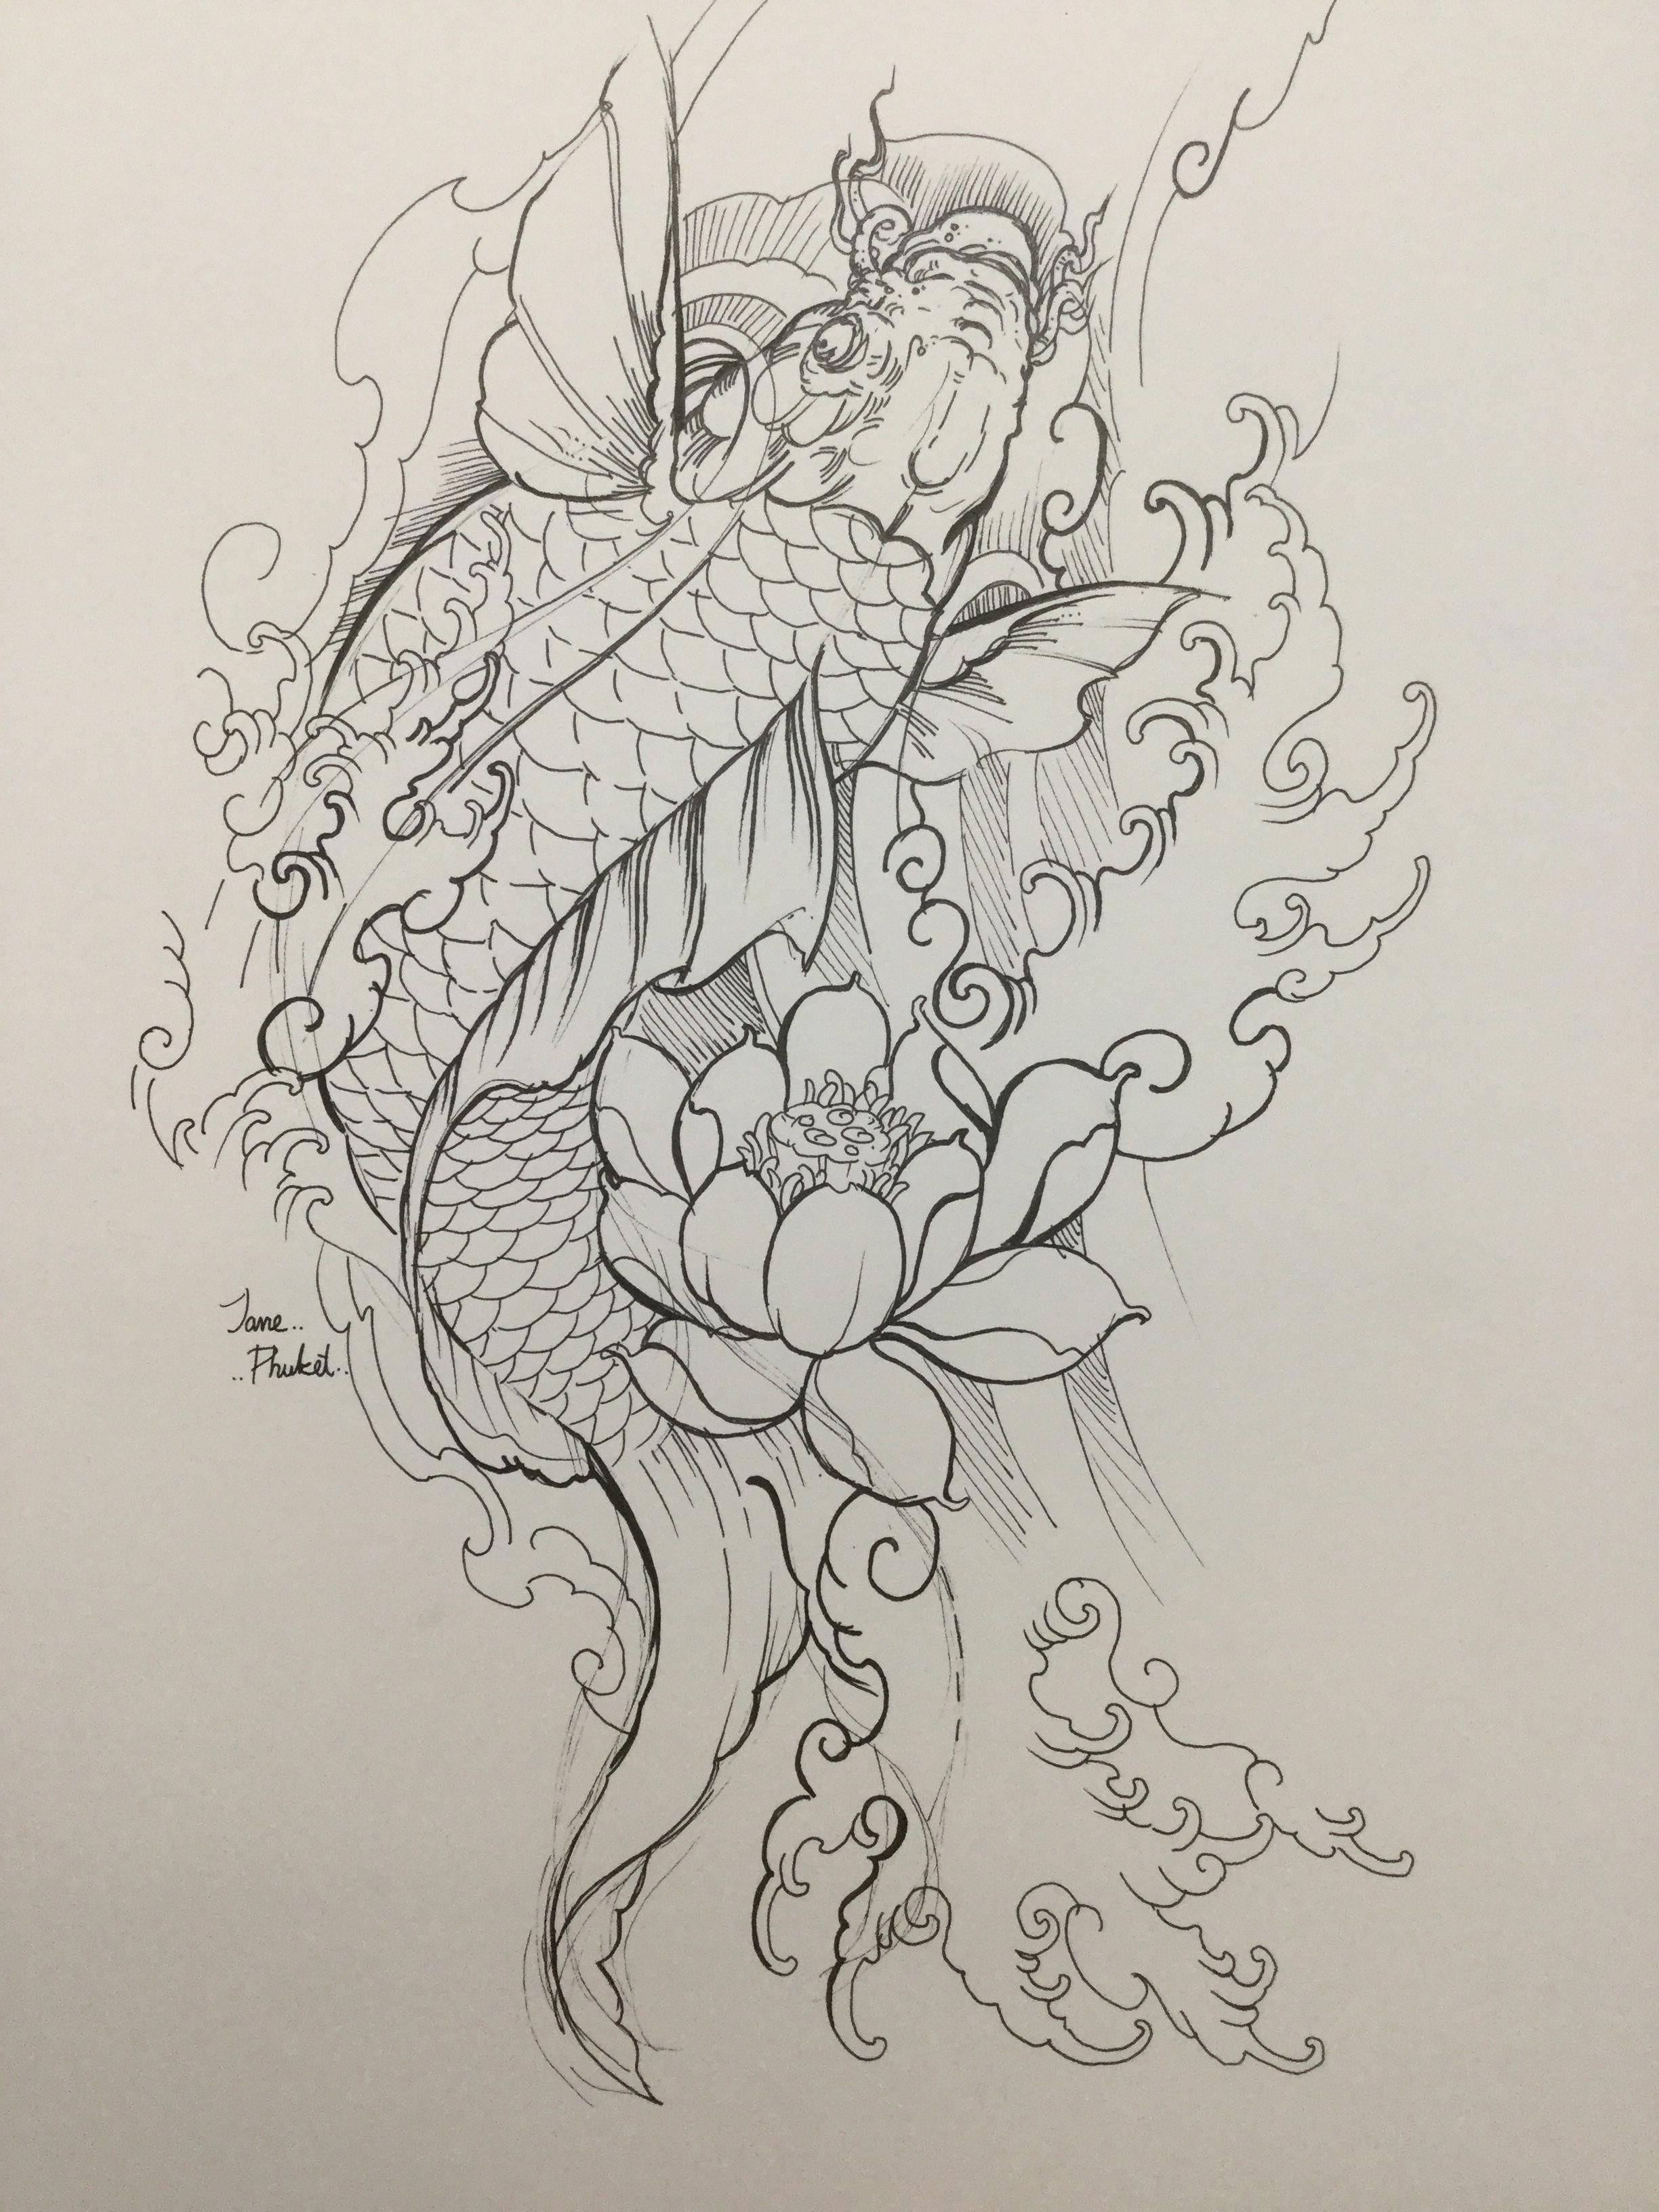 Read About Dragon Koi Fish Tattoo Designs Find Out About The Type Of Tattoo You Would Like You Ne Japanese Tattoo Art Koi Fish Tattoo Koi Fish Drawing Tattoo